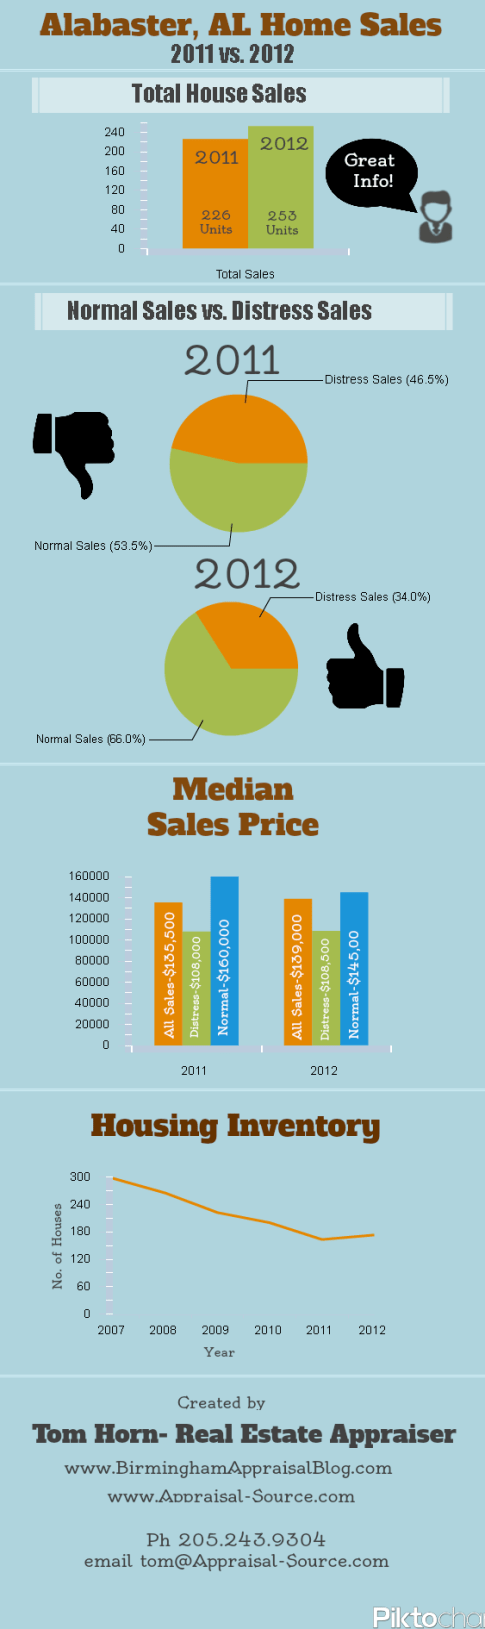 Alabaster Home Sales Infographic